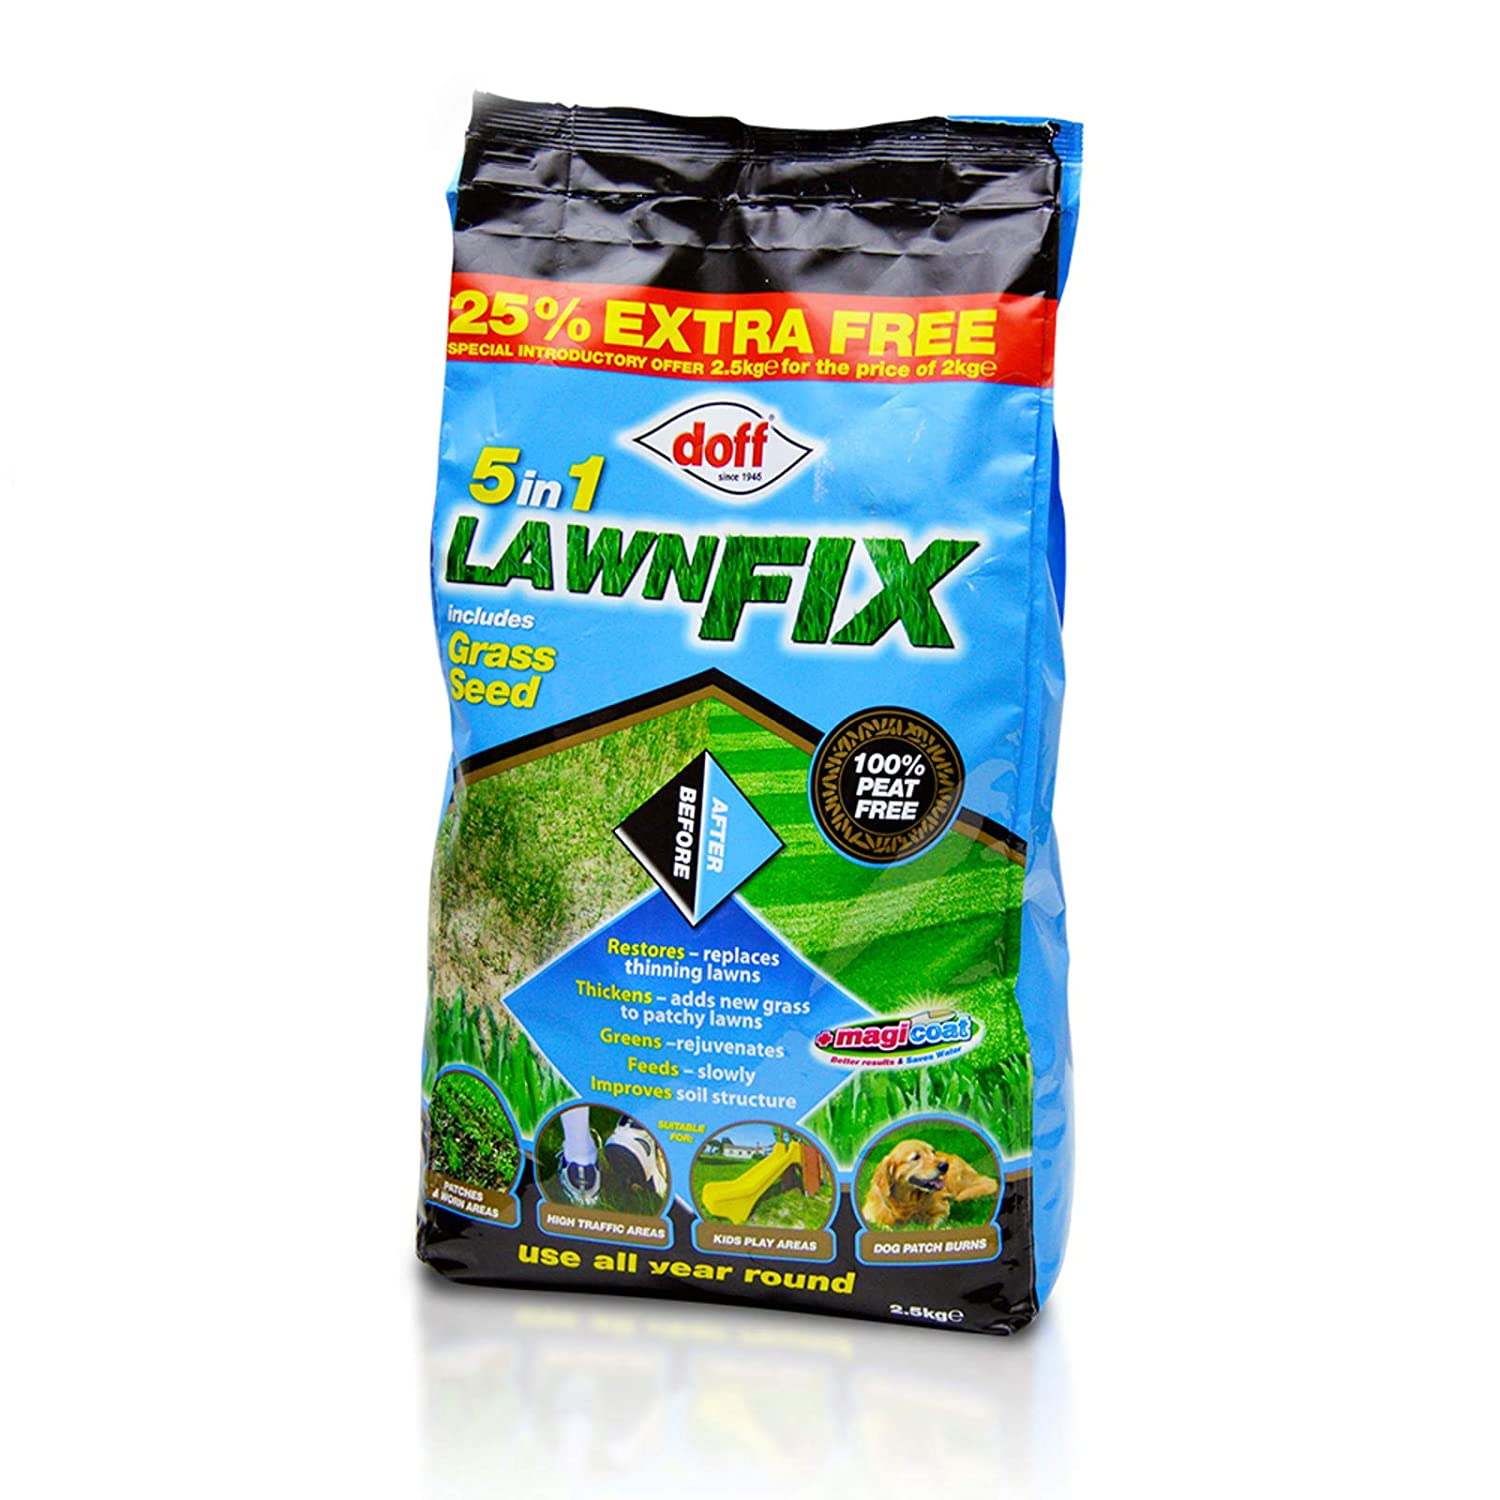 5 in 1 LawnFix Feed, use all year round UK Home Shopping Ltd